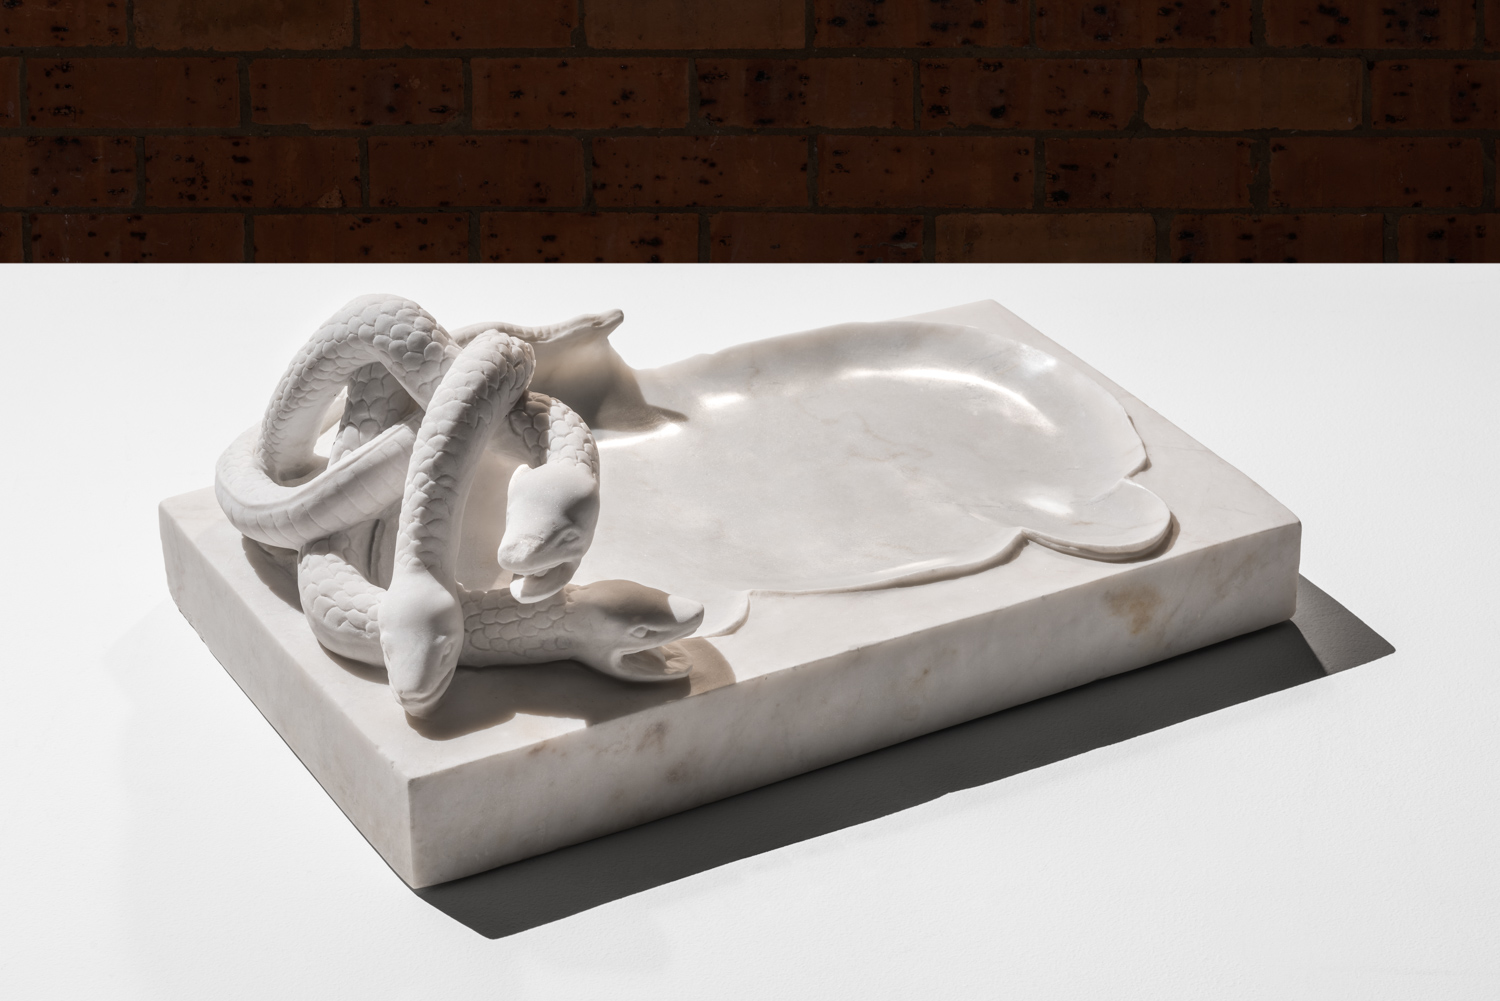 Plinth of the effigy  2016 Imperial white, found object 30 x 37 x 63 cm